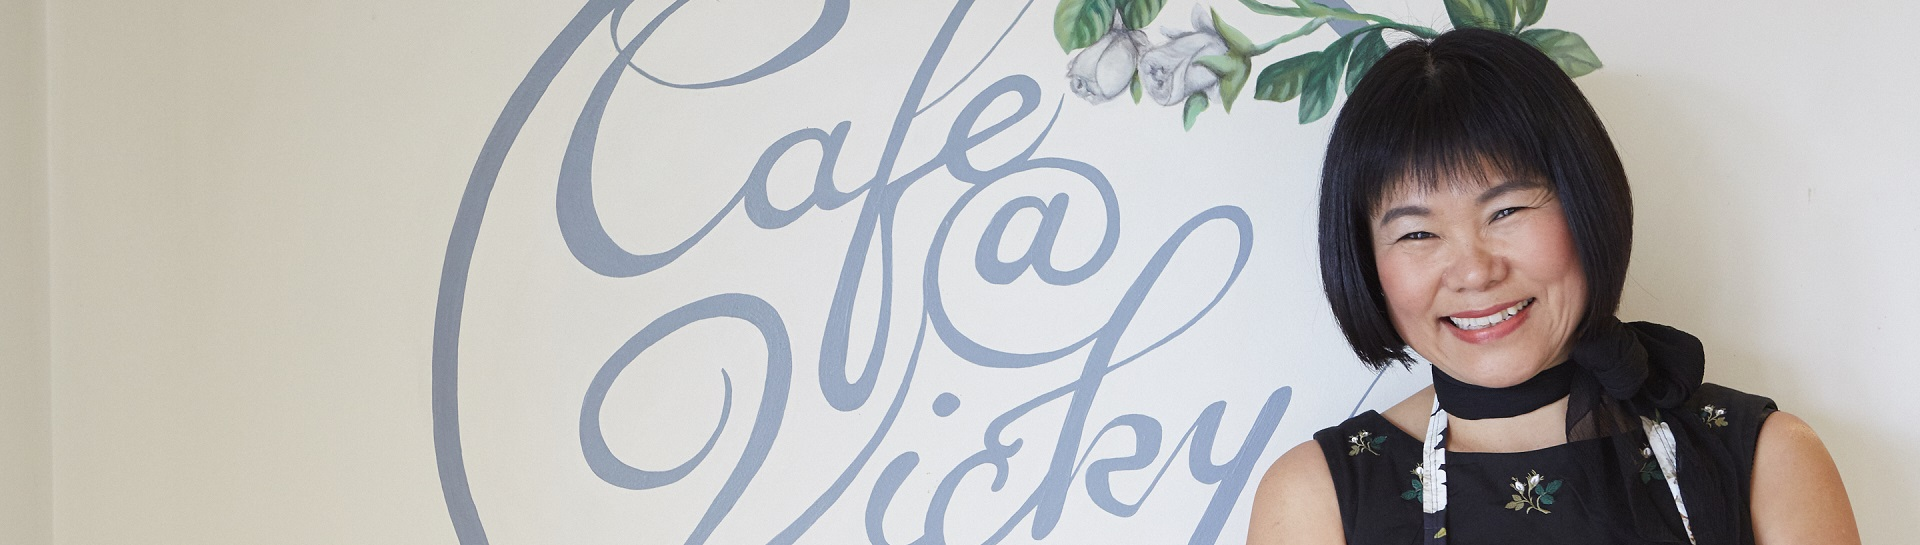 webslider-cafe-vicky-one-remuera-1920x545